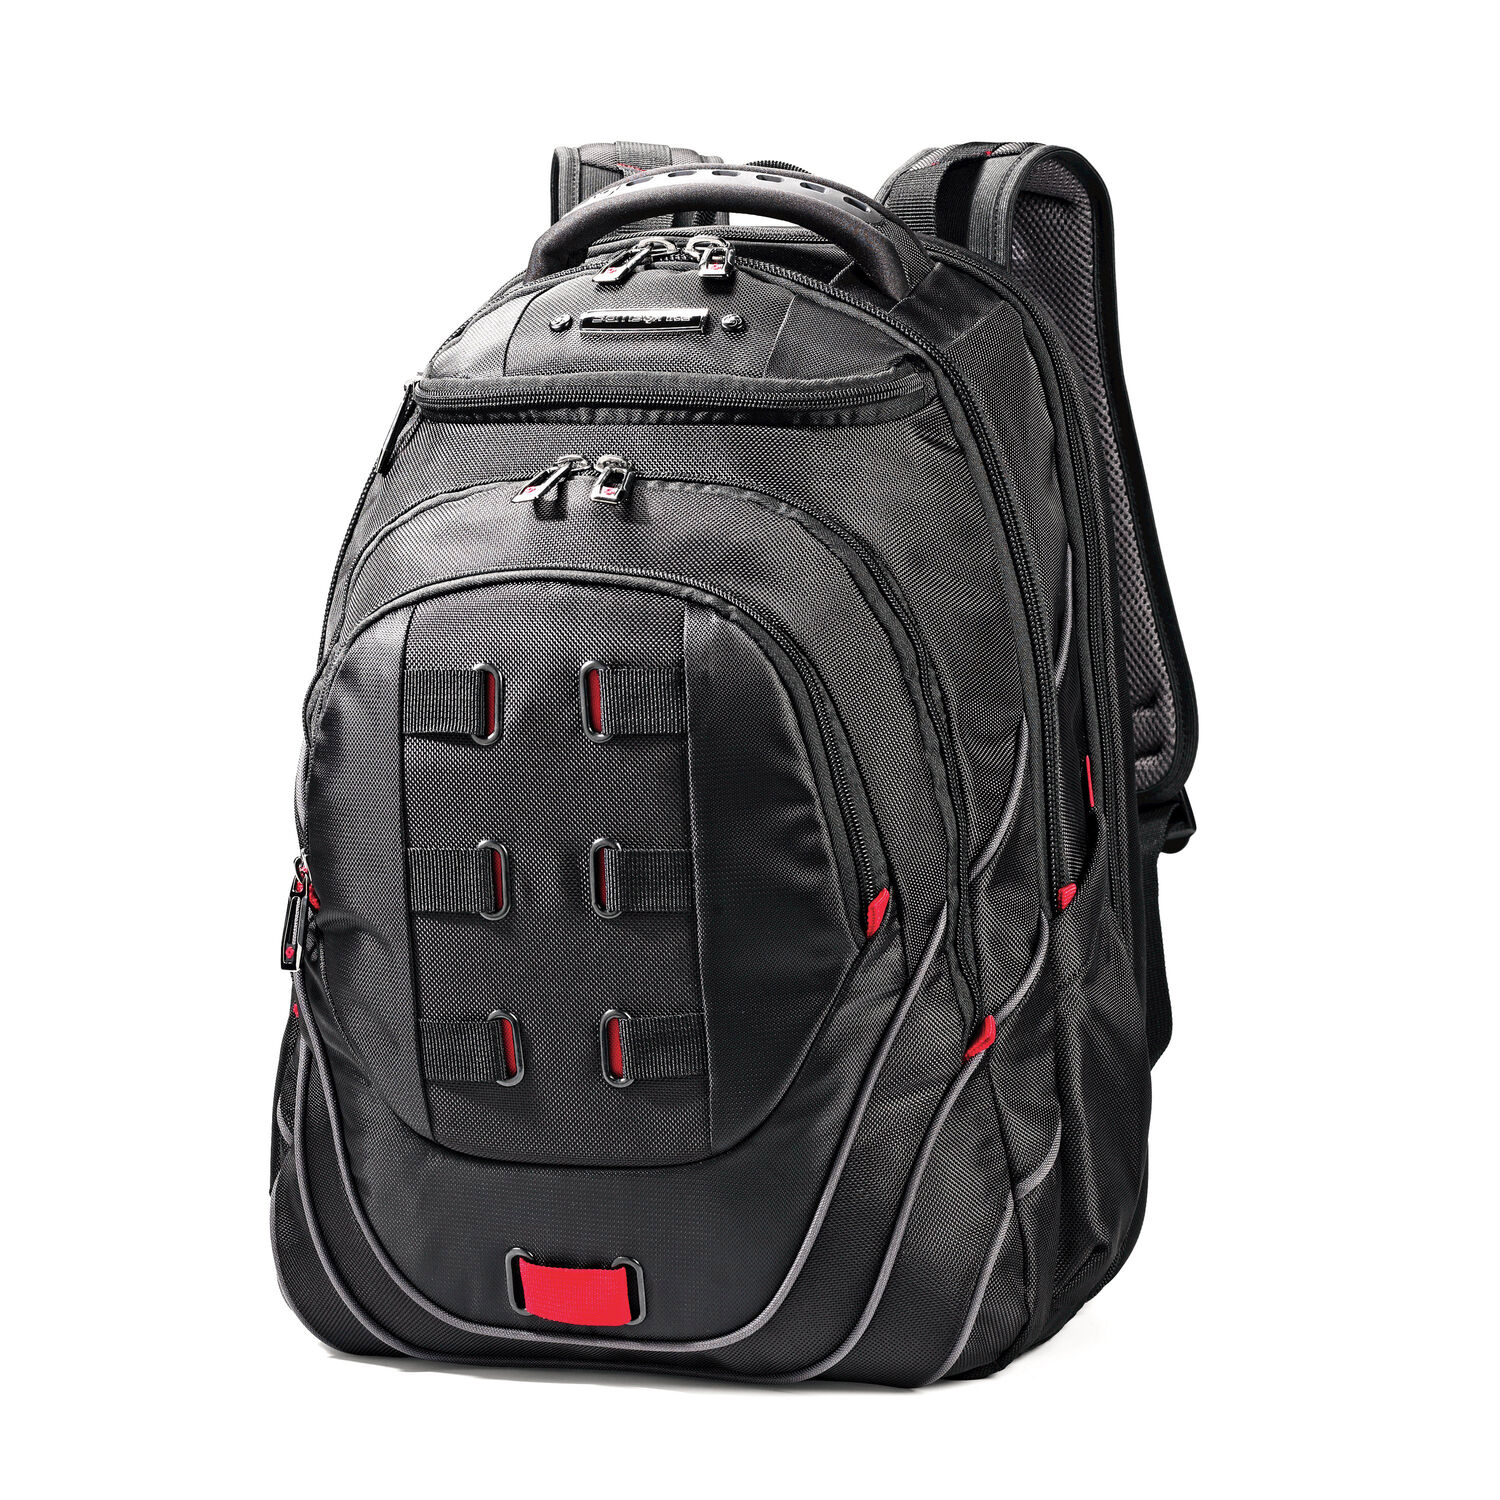 Samsonite Tectonic 17 Quot Perfect Fit Laptop Backpack